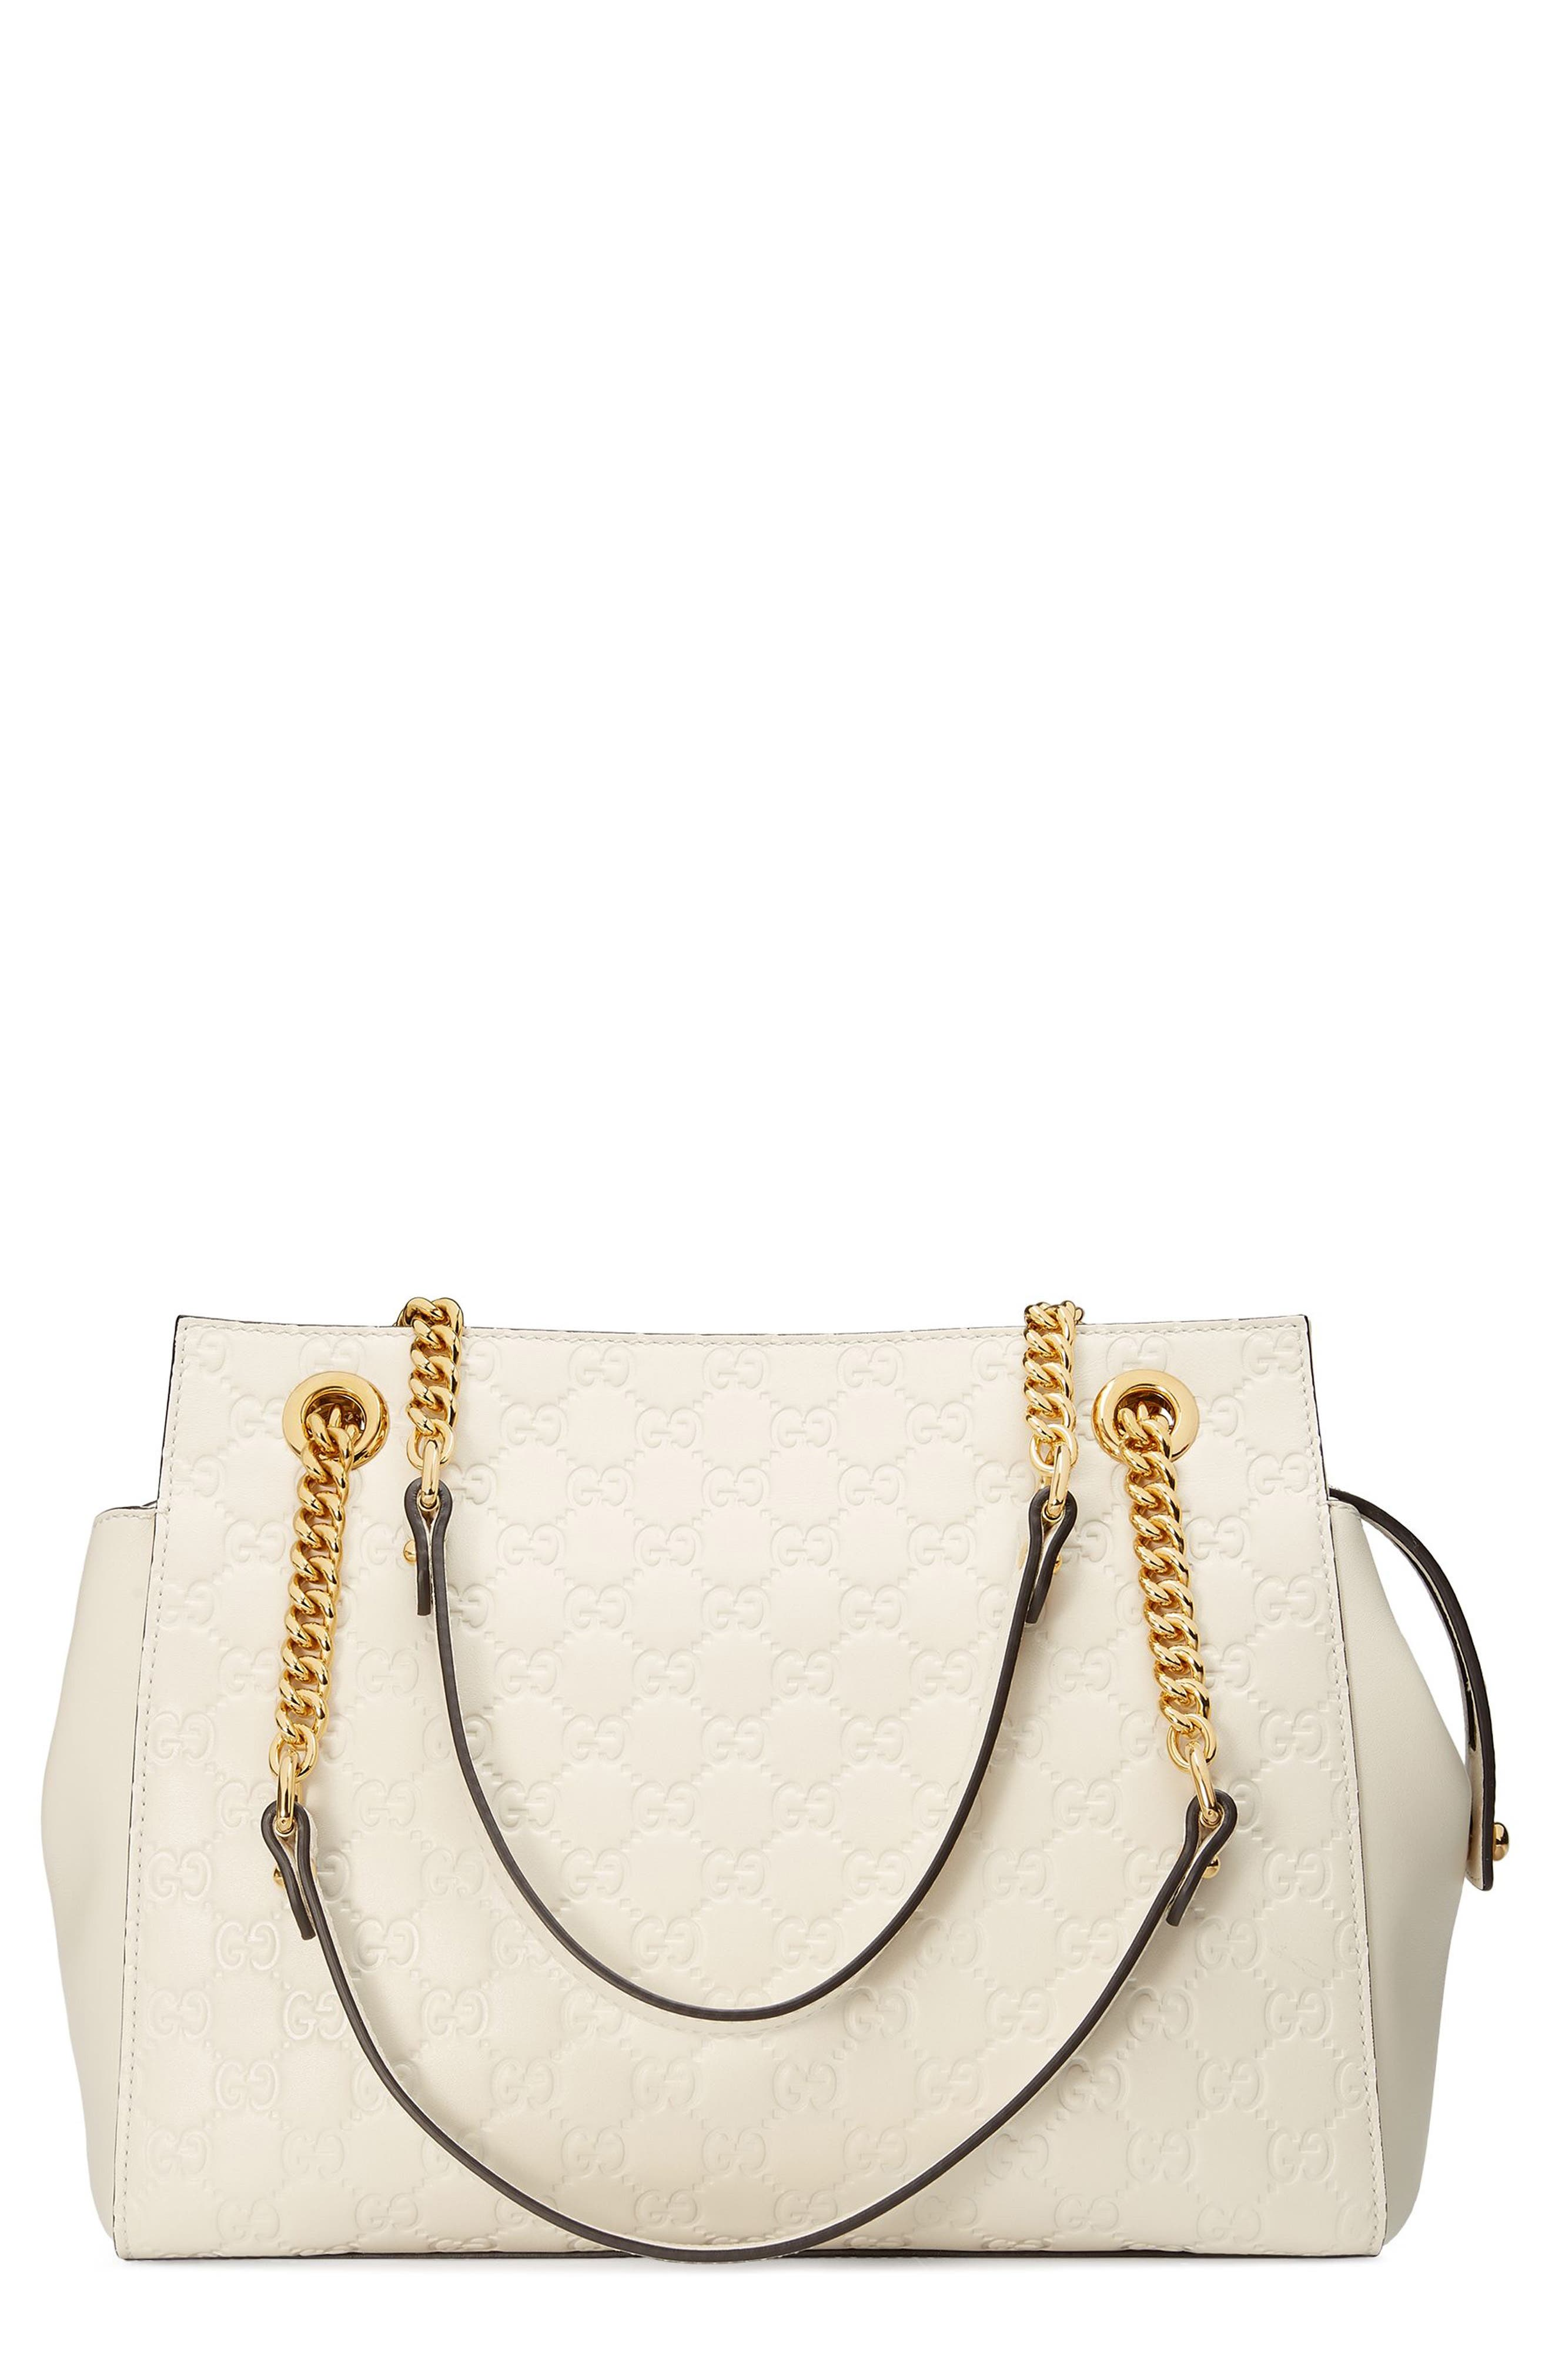 Gucci Signature Soft Leather Shoulder Bag | Nordstrom